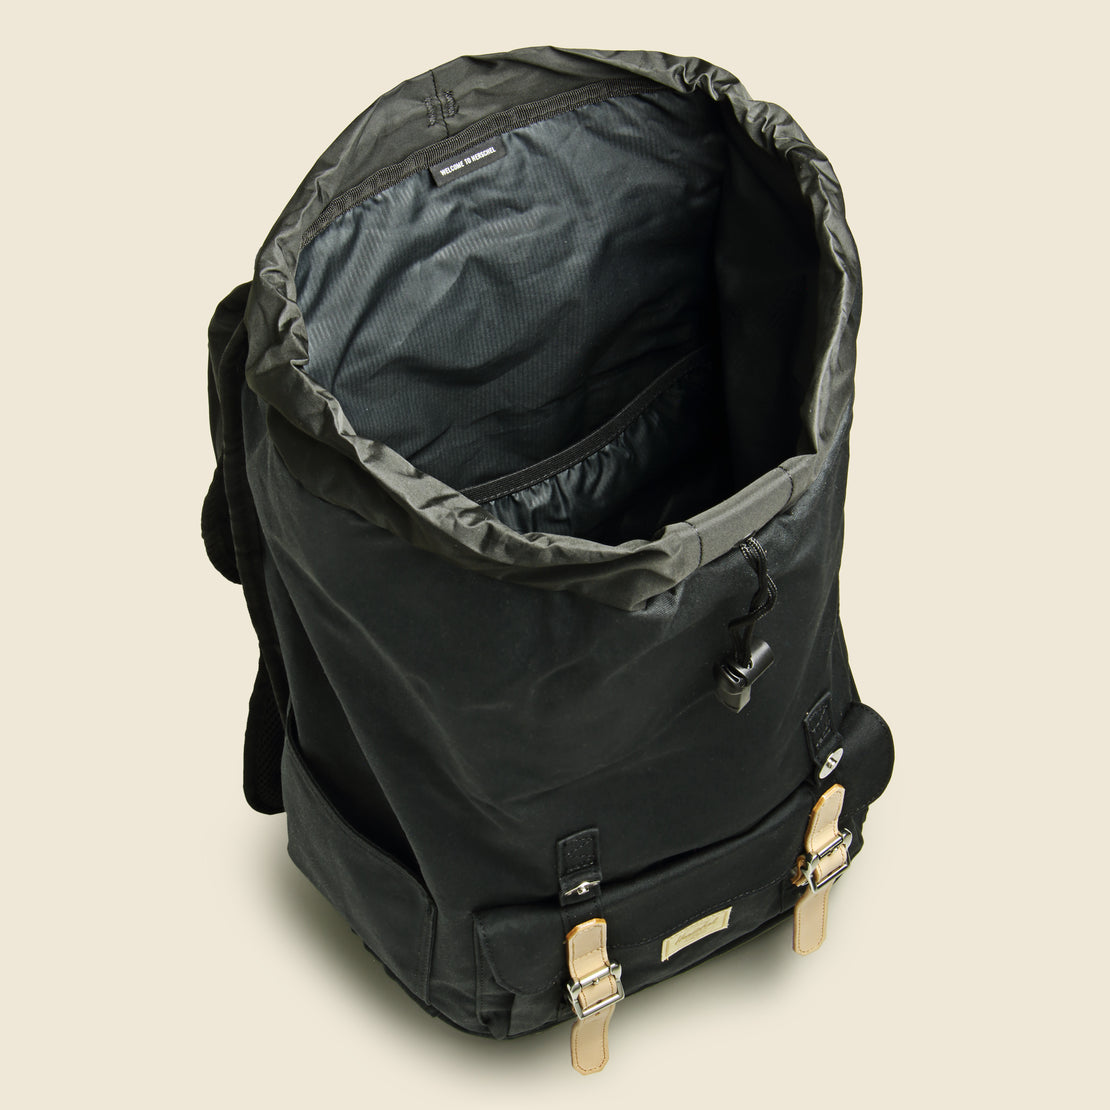 Lil American Premium Cotton Backpack - Black